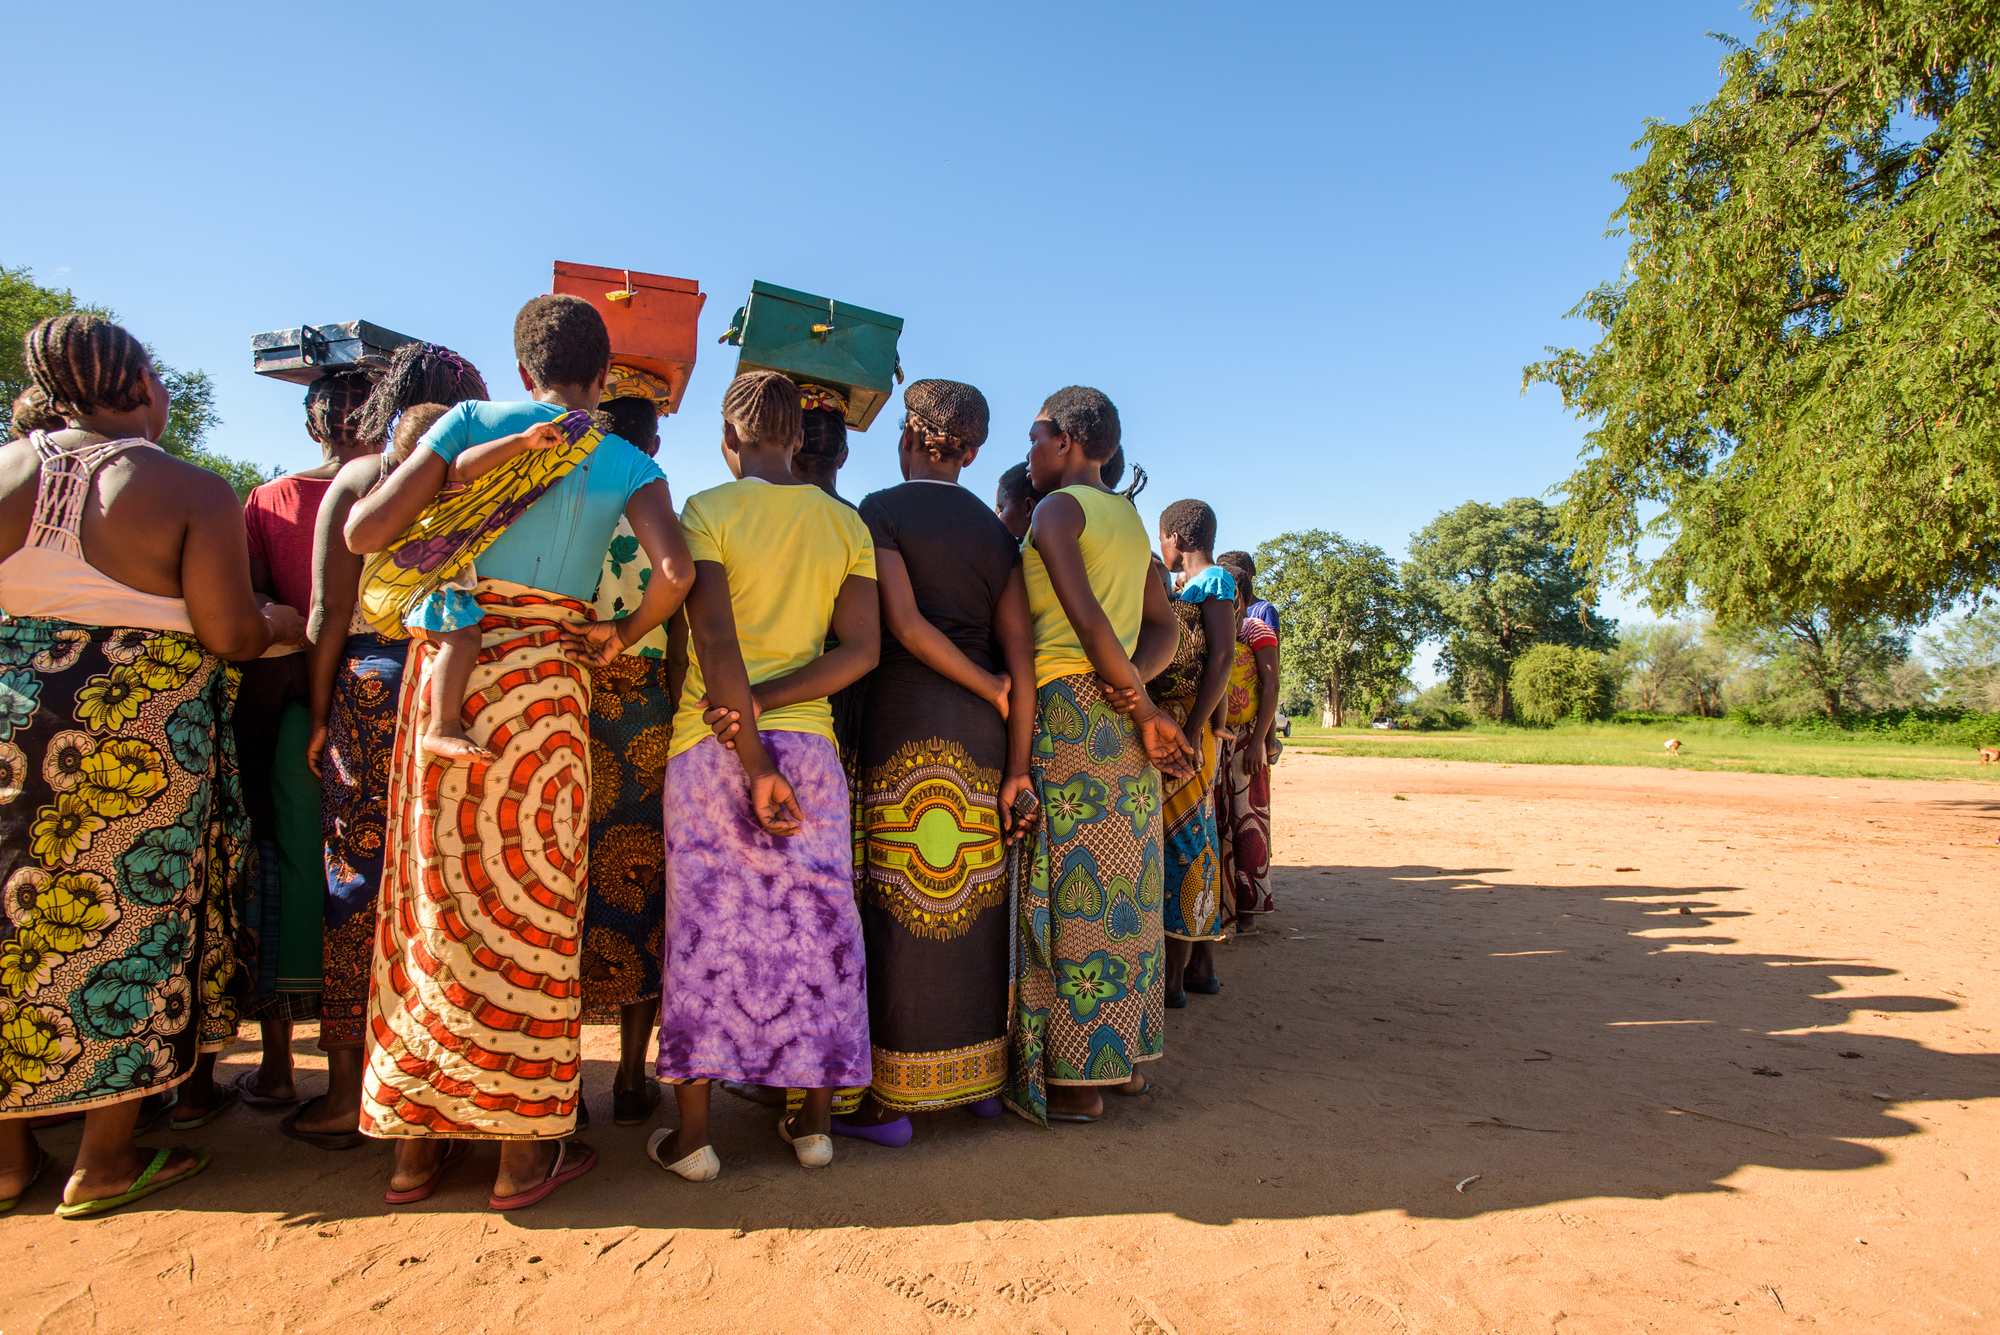 Savings group of women in circle in Zambia